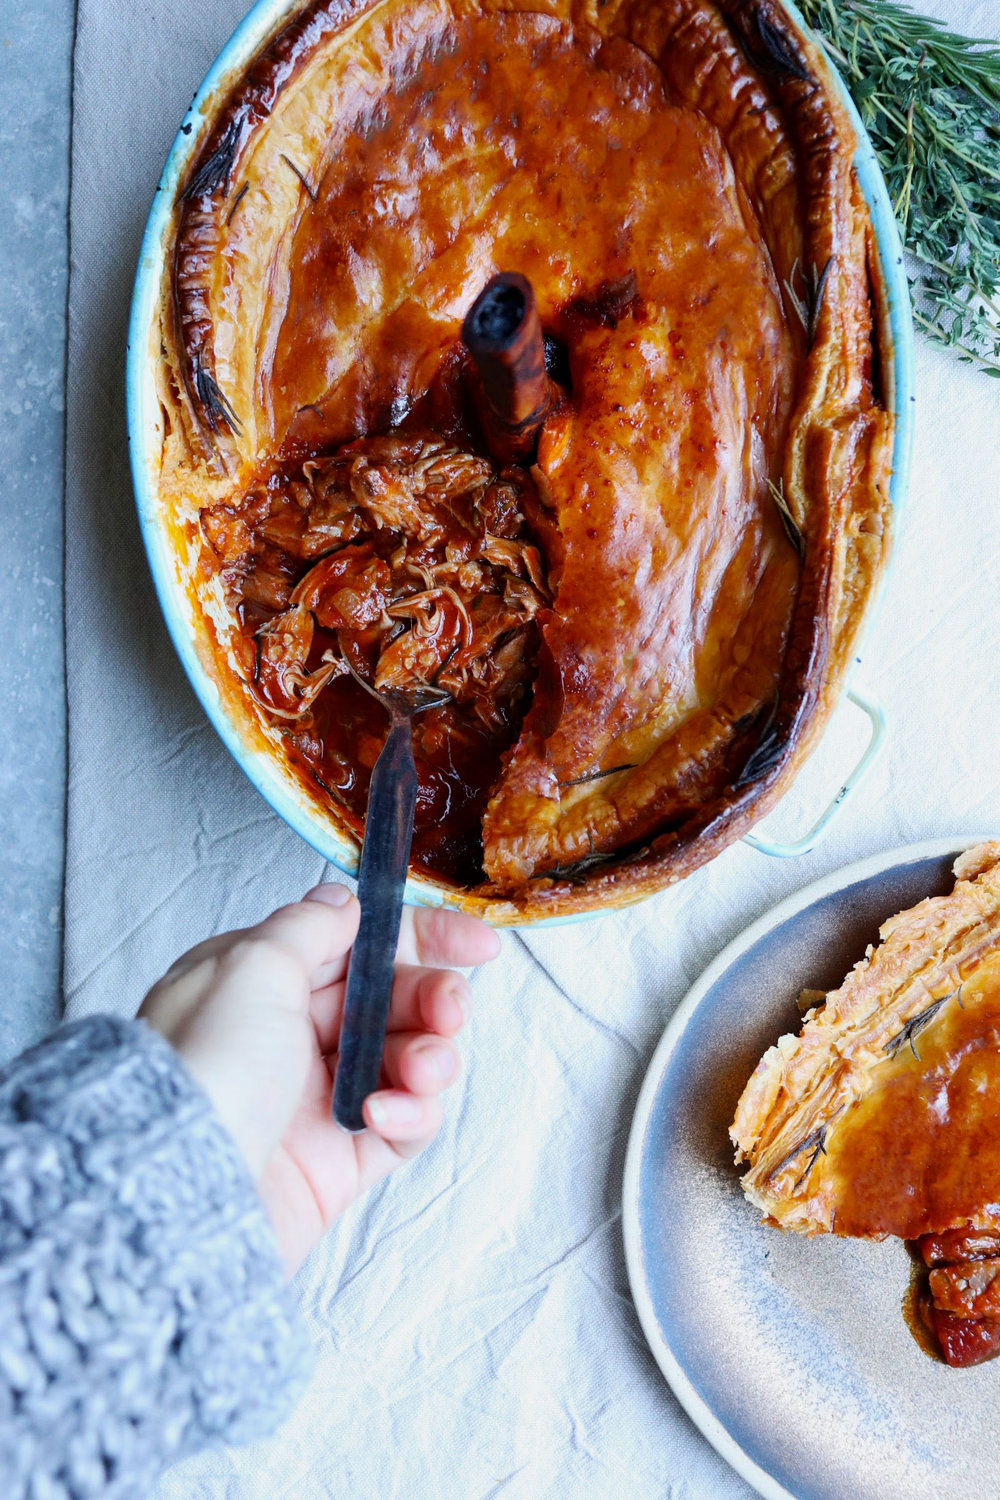 Pie with spoon out.jpg